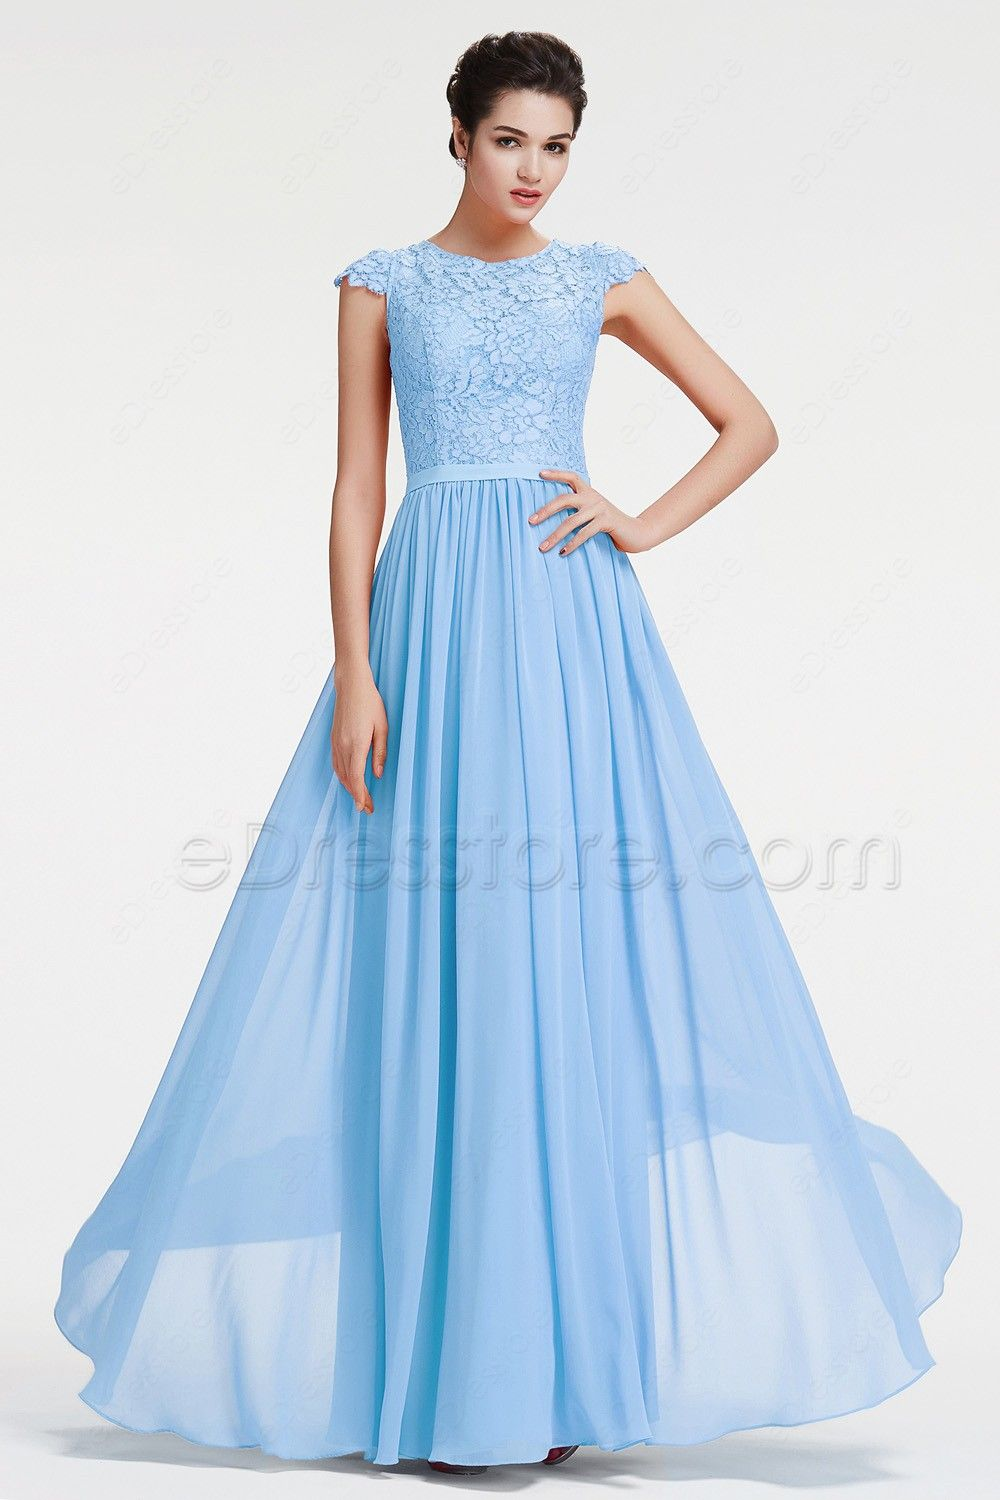 Modest Ice Blue Lace Prom Dress With Cap Sleeves Grey Bridesmaid Dresses Burnt Orange Bridesmaid Dresses Orange Bridesmaid Dresses [ 1500 x 1000 Pixel ]